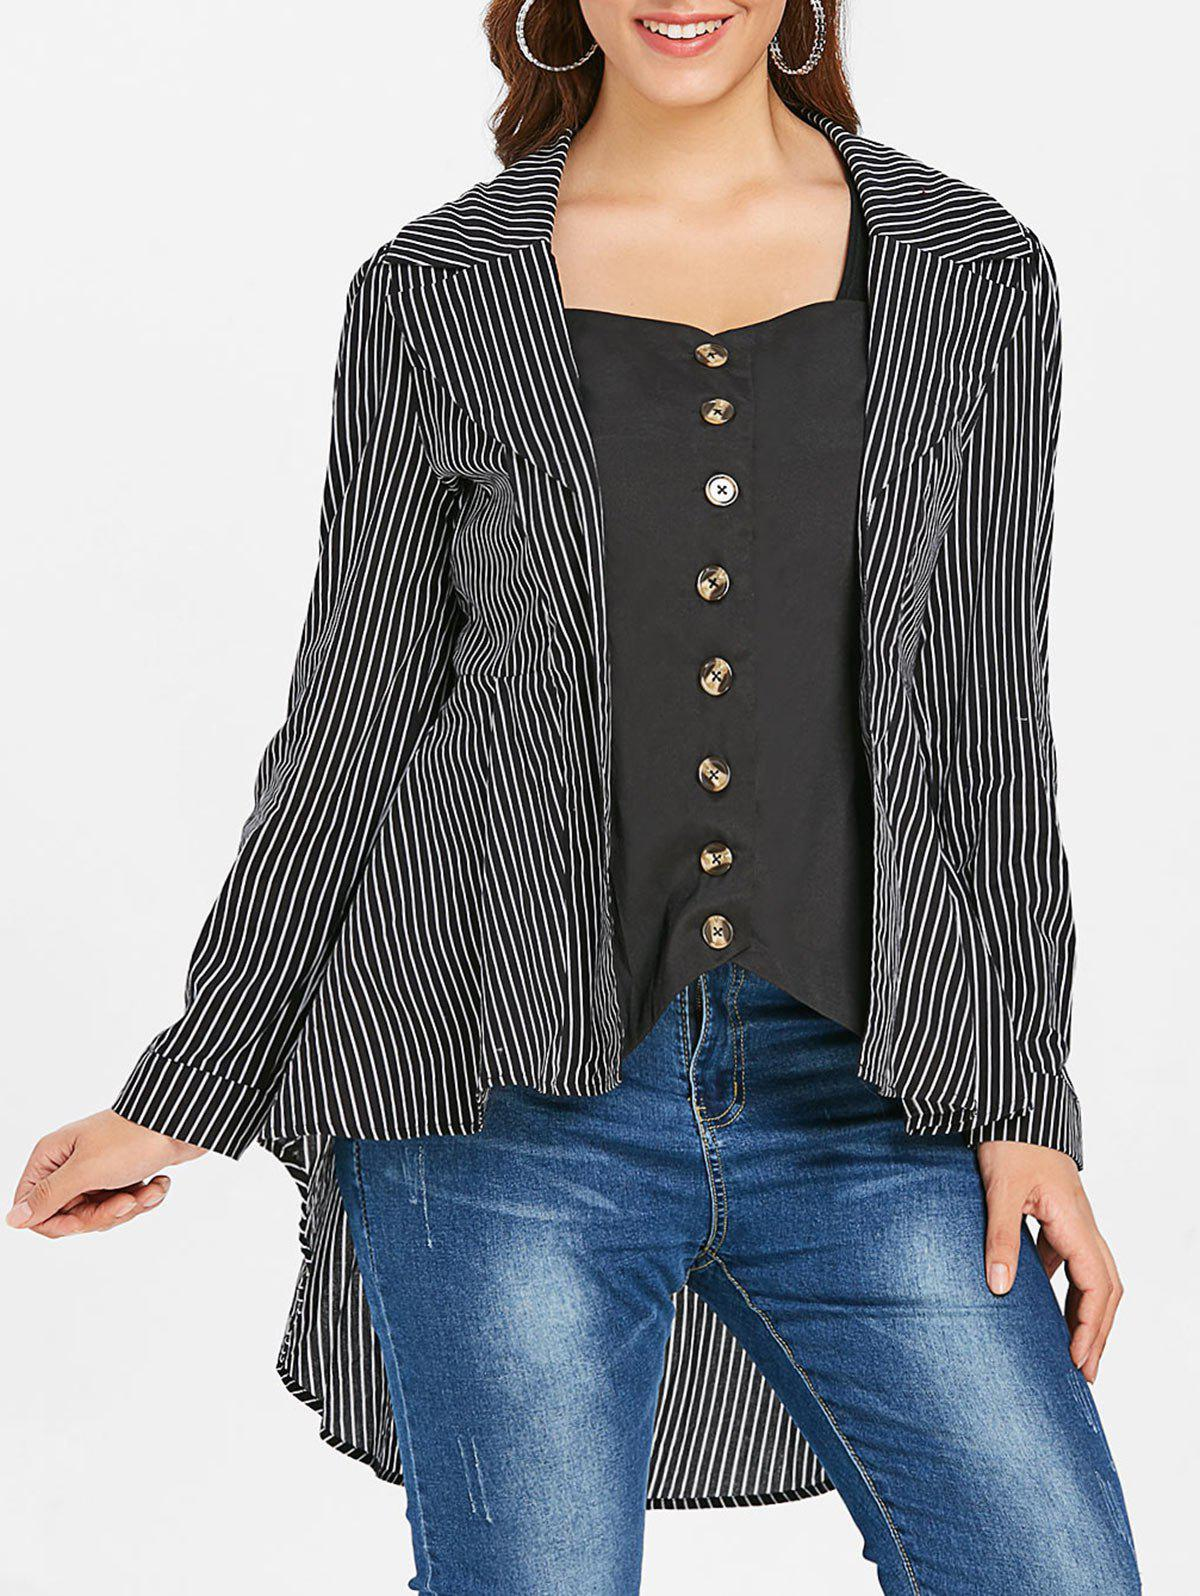 Asymmetric Plus Size Stripe Shirt - BLACK L